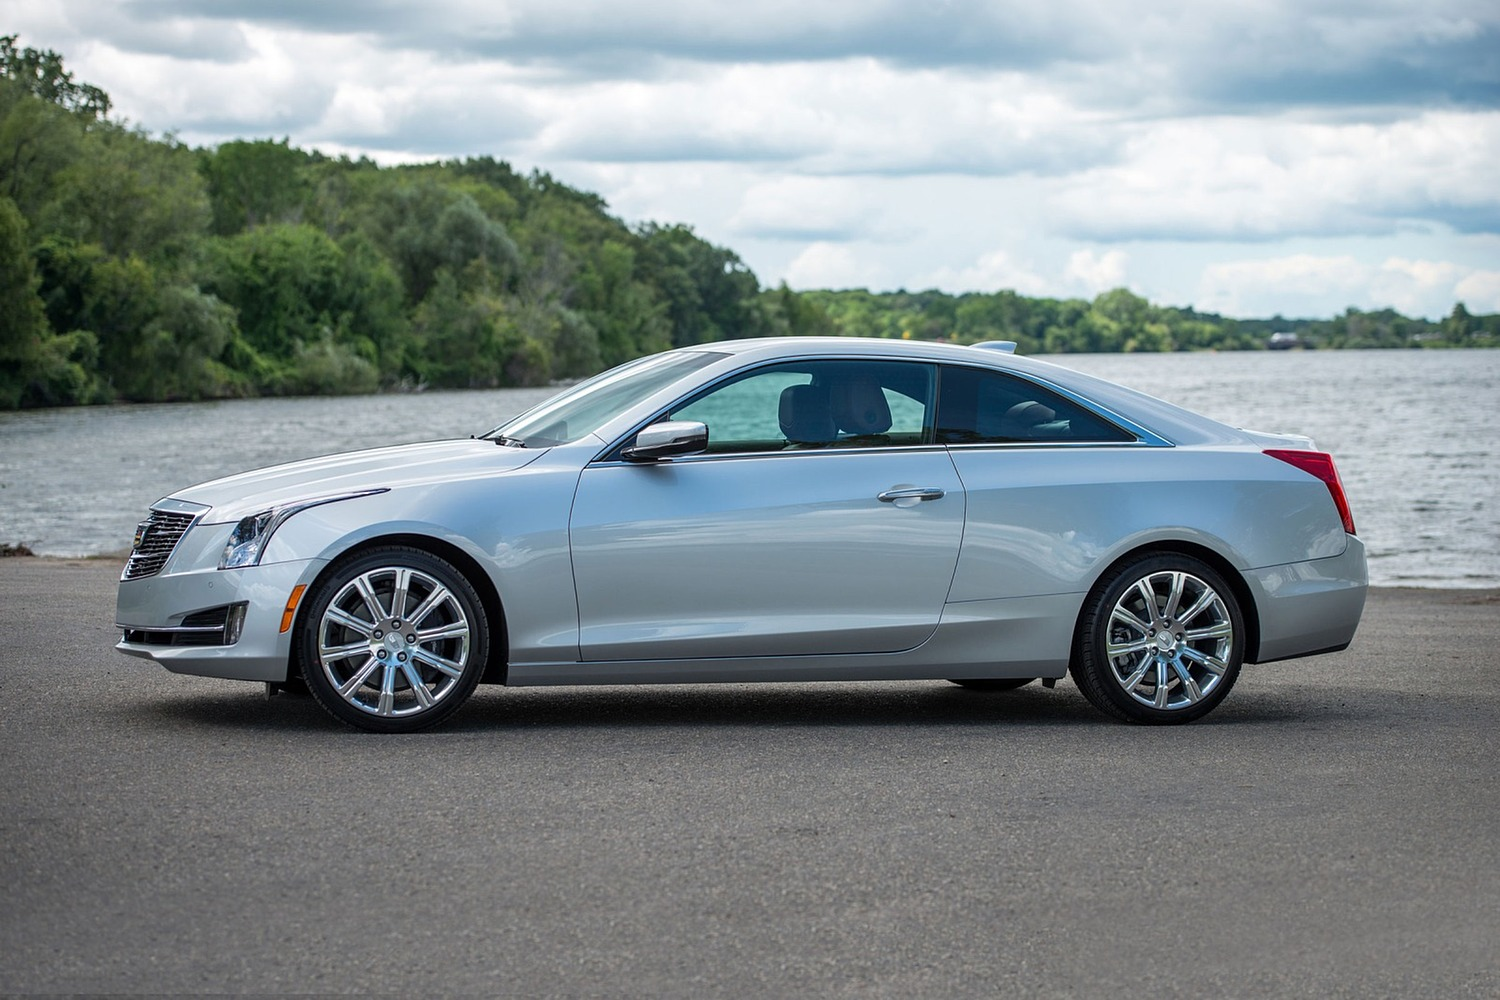 2018 Cadillac ATS Coupe Luxury Profile